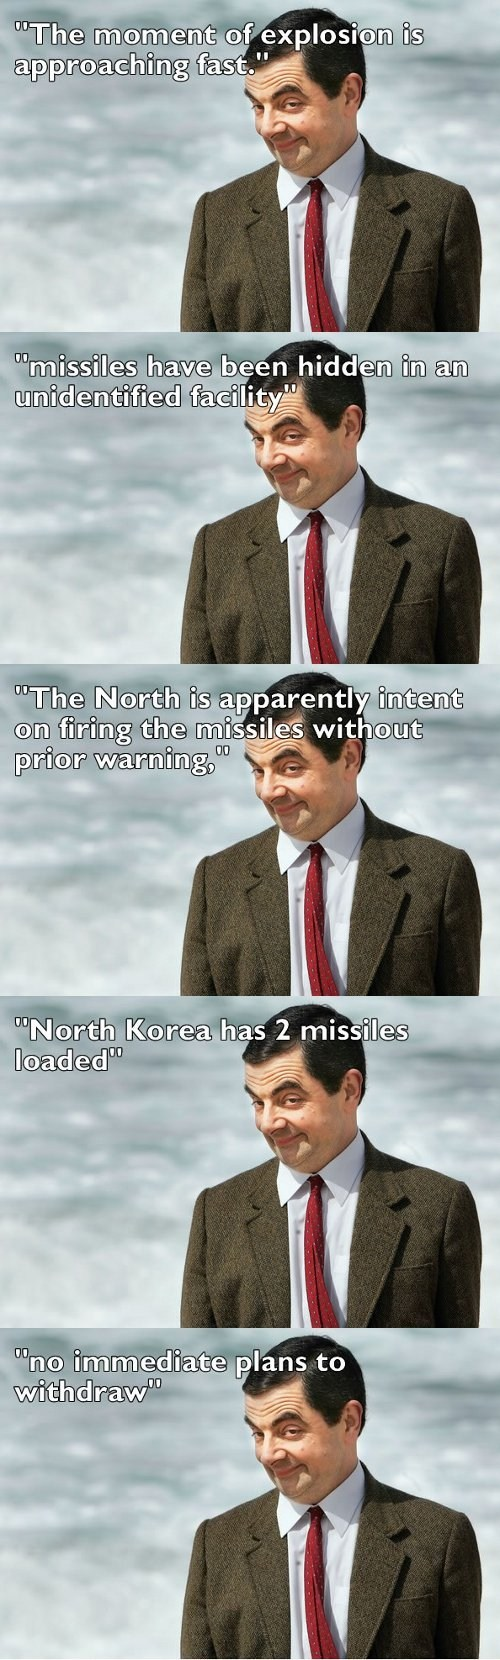 Mr. Bean Turns the NK Crisis Dirty